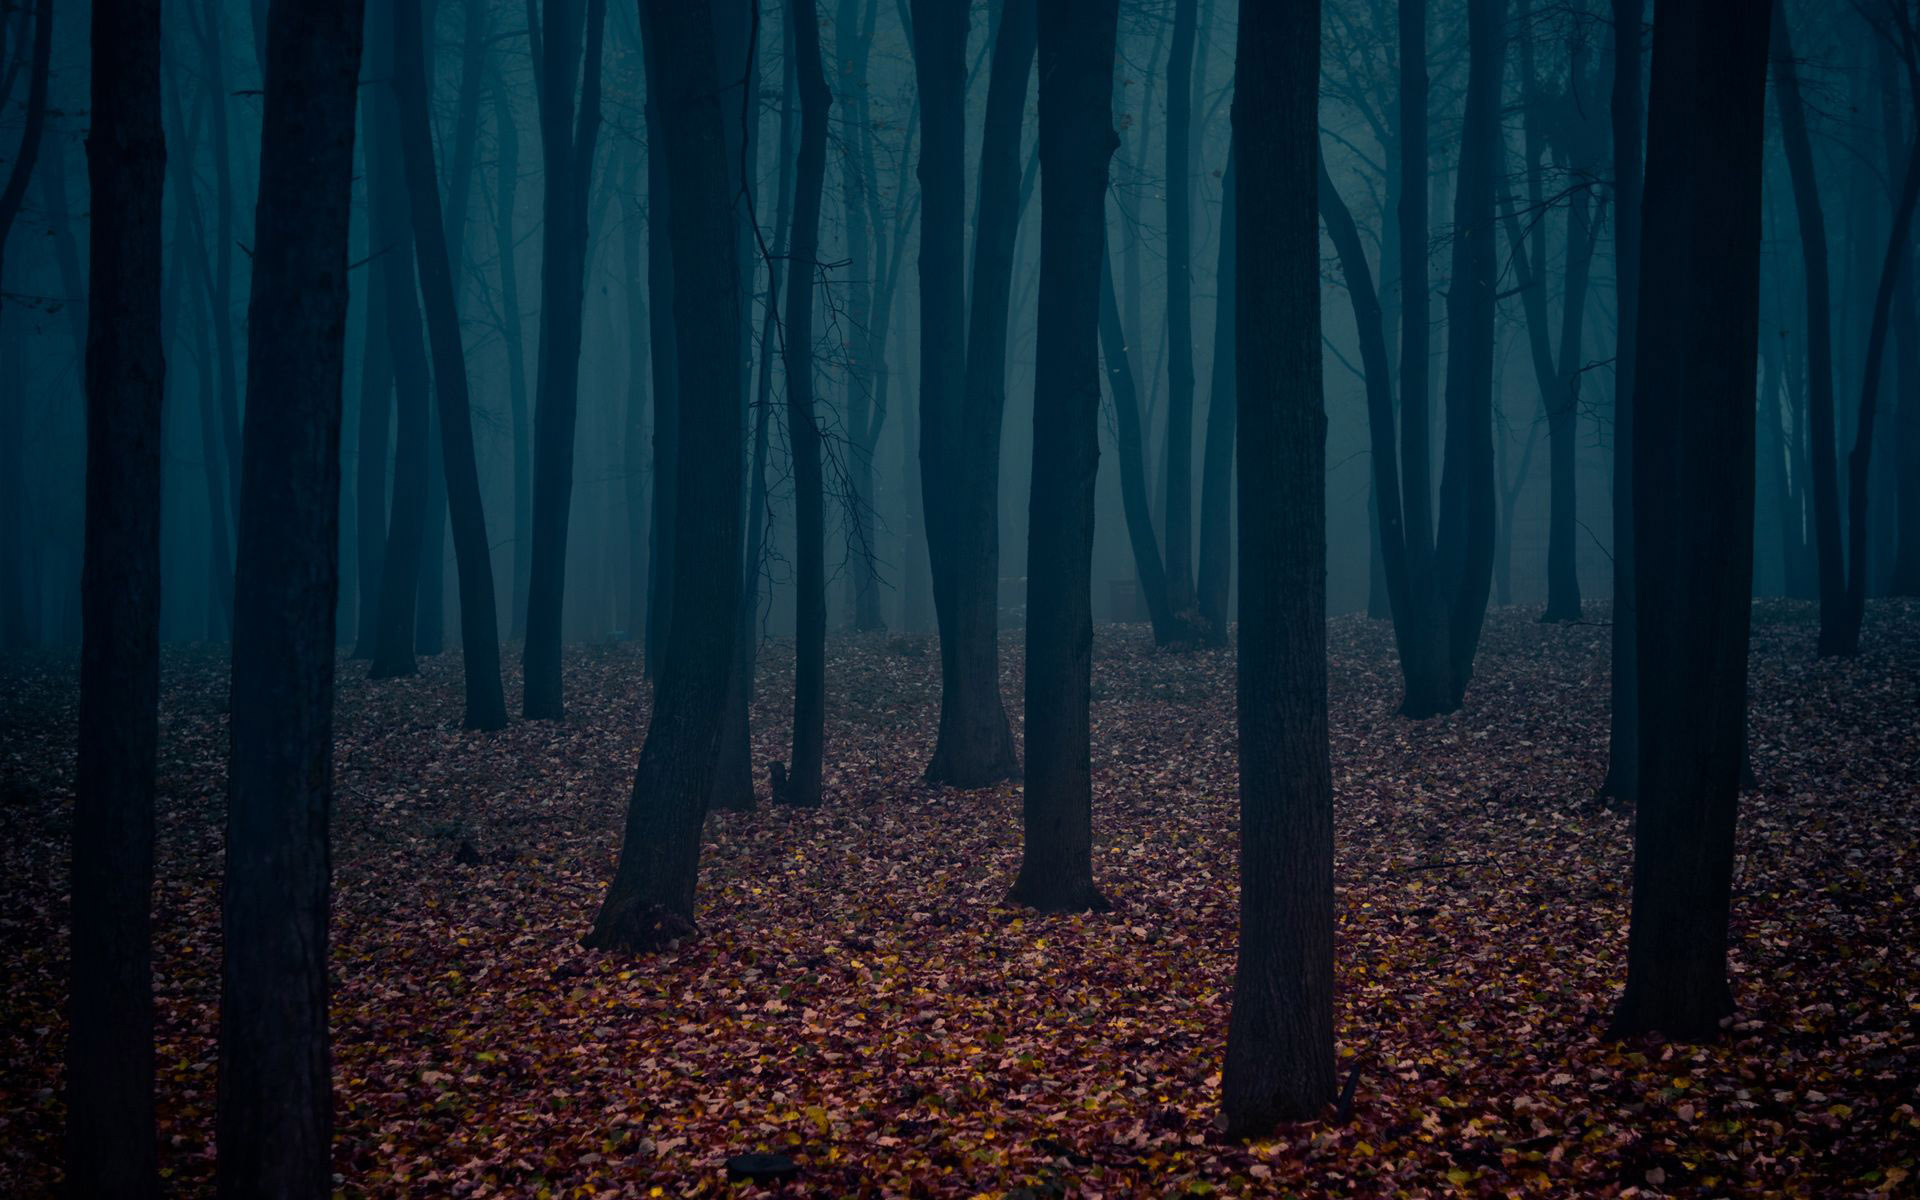 Dark Forest The Art Mad Wallpapers 1920x1200